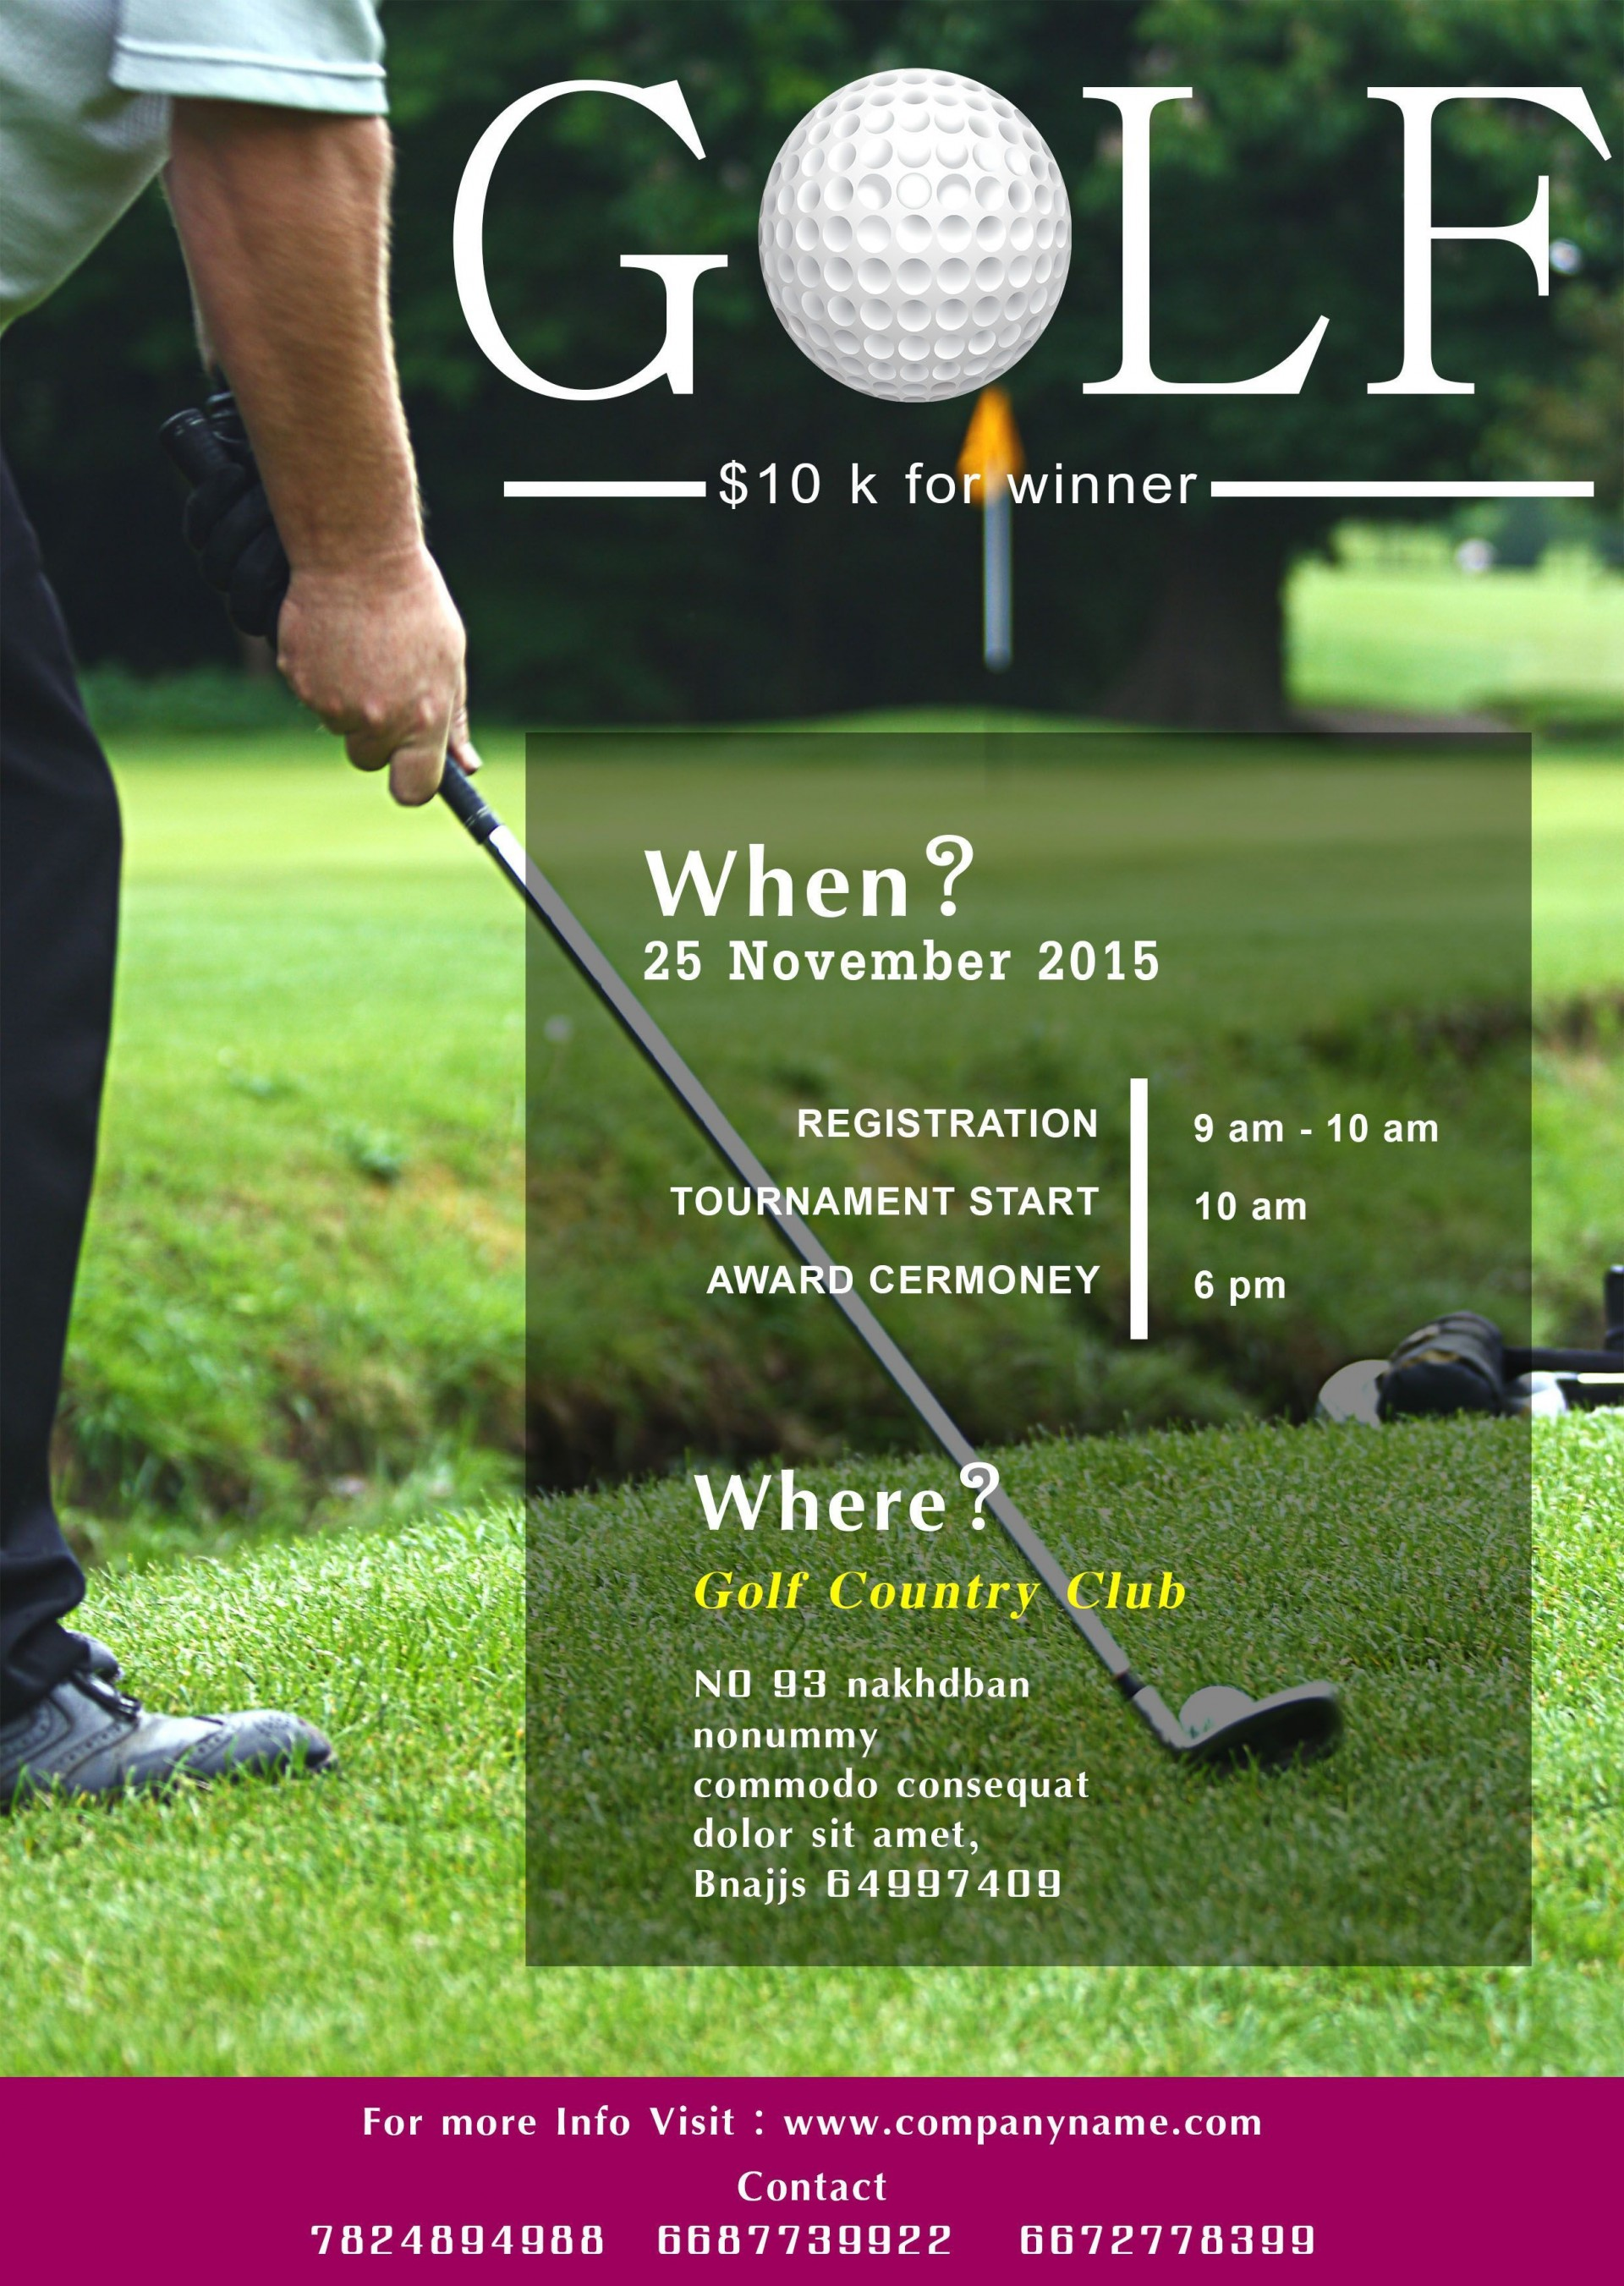 004 Dreaded Free Charity Golf Tournament Flyer Template High Resolution 1920